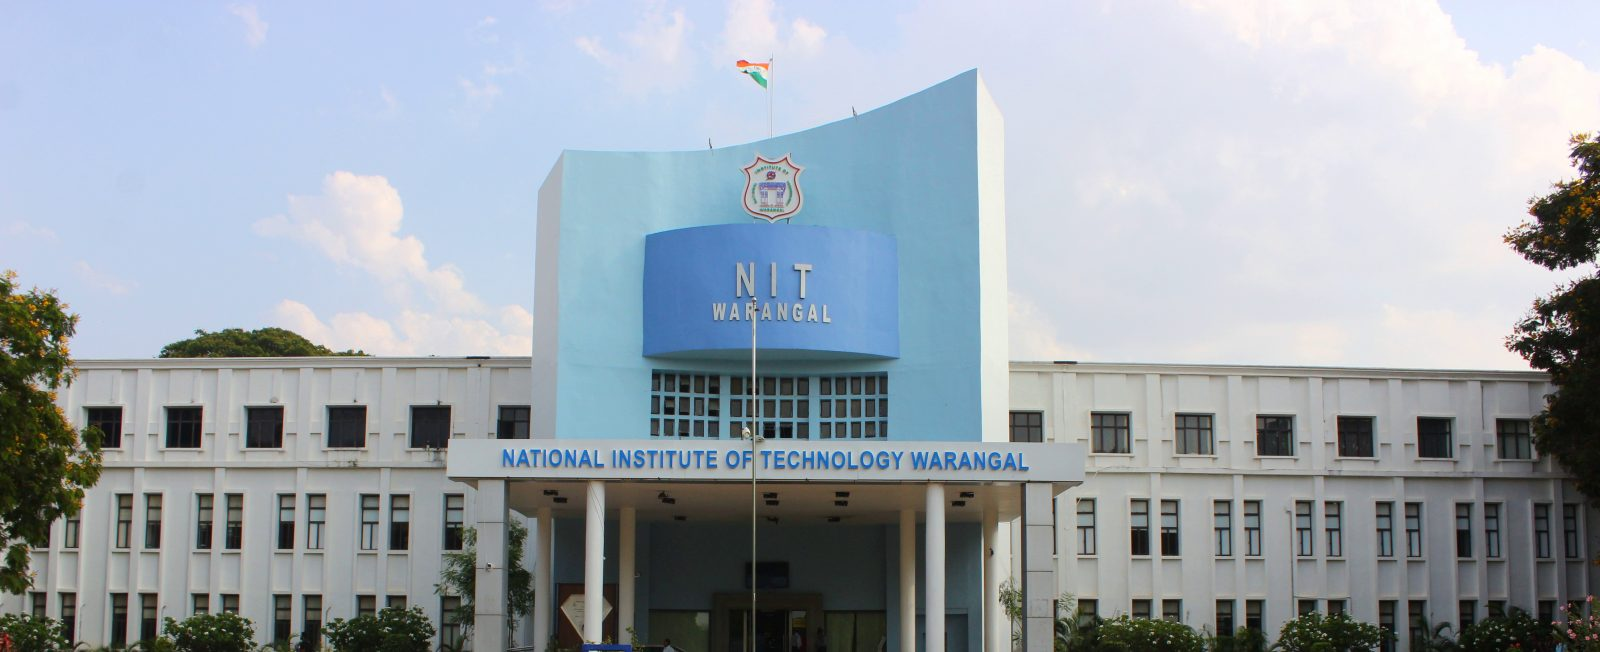 National Institute of Technology, Warangal